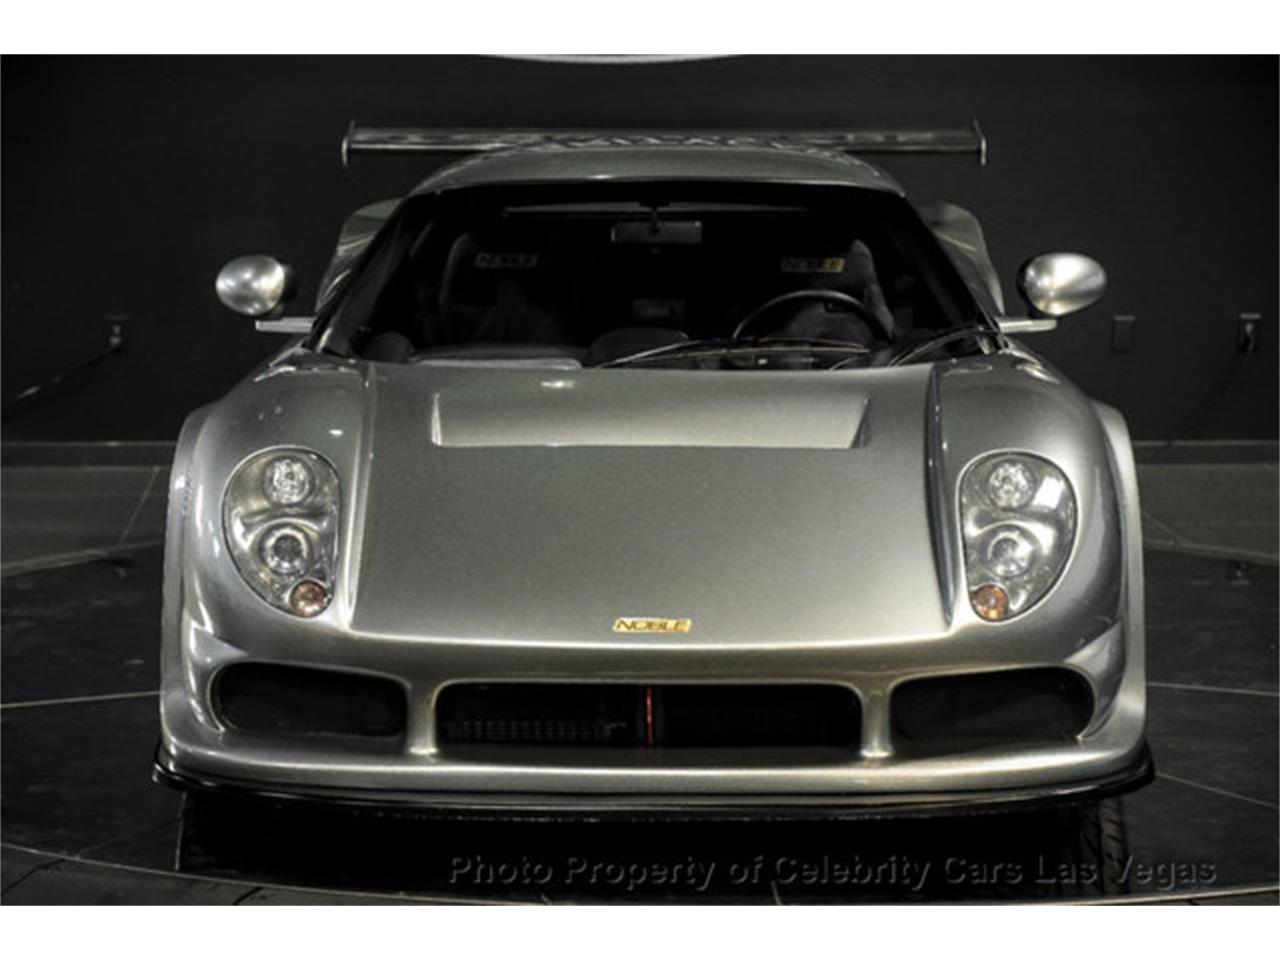 Large Picture of '04 Noble M12 GTO-3R - $54,900.00 Offered by Celebrity Cars Las Vegas - OY16